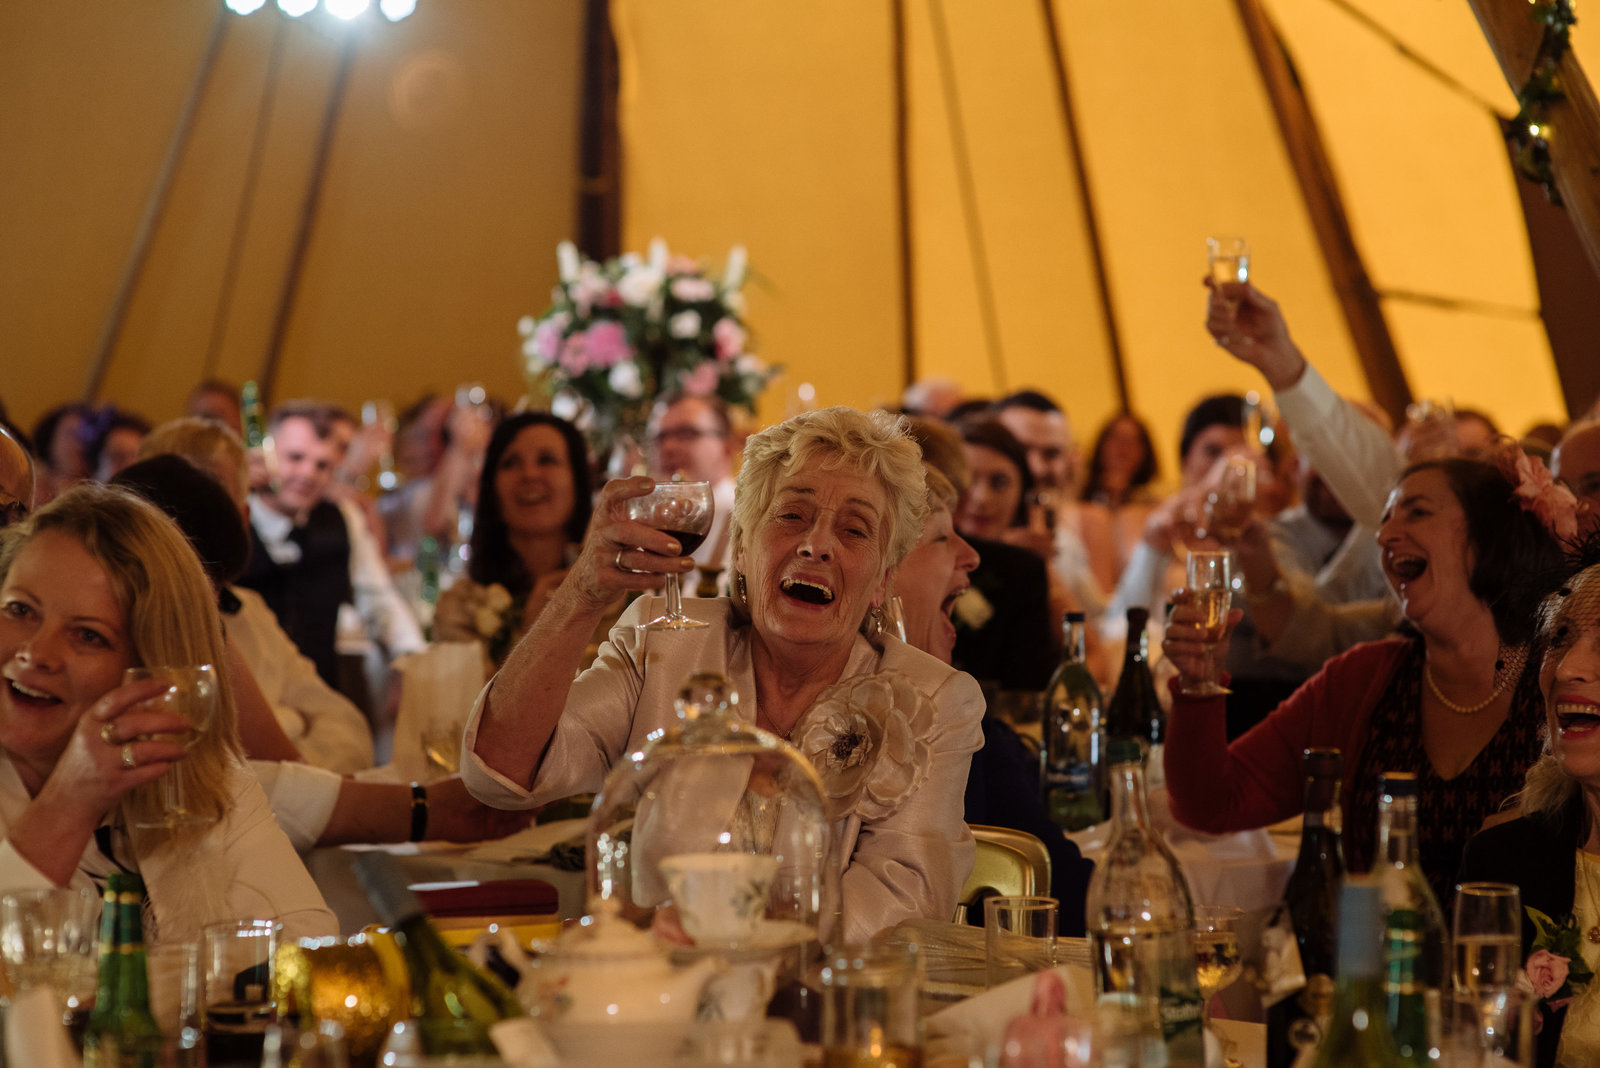 Wedding guests during speeches in tipi at Whelprigg House. Documentary wedding photography